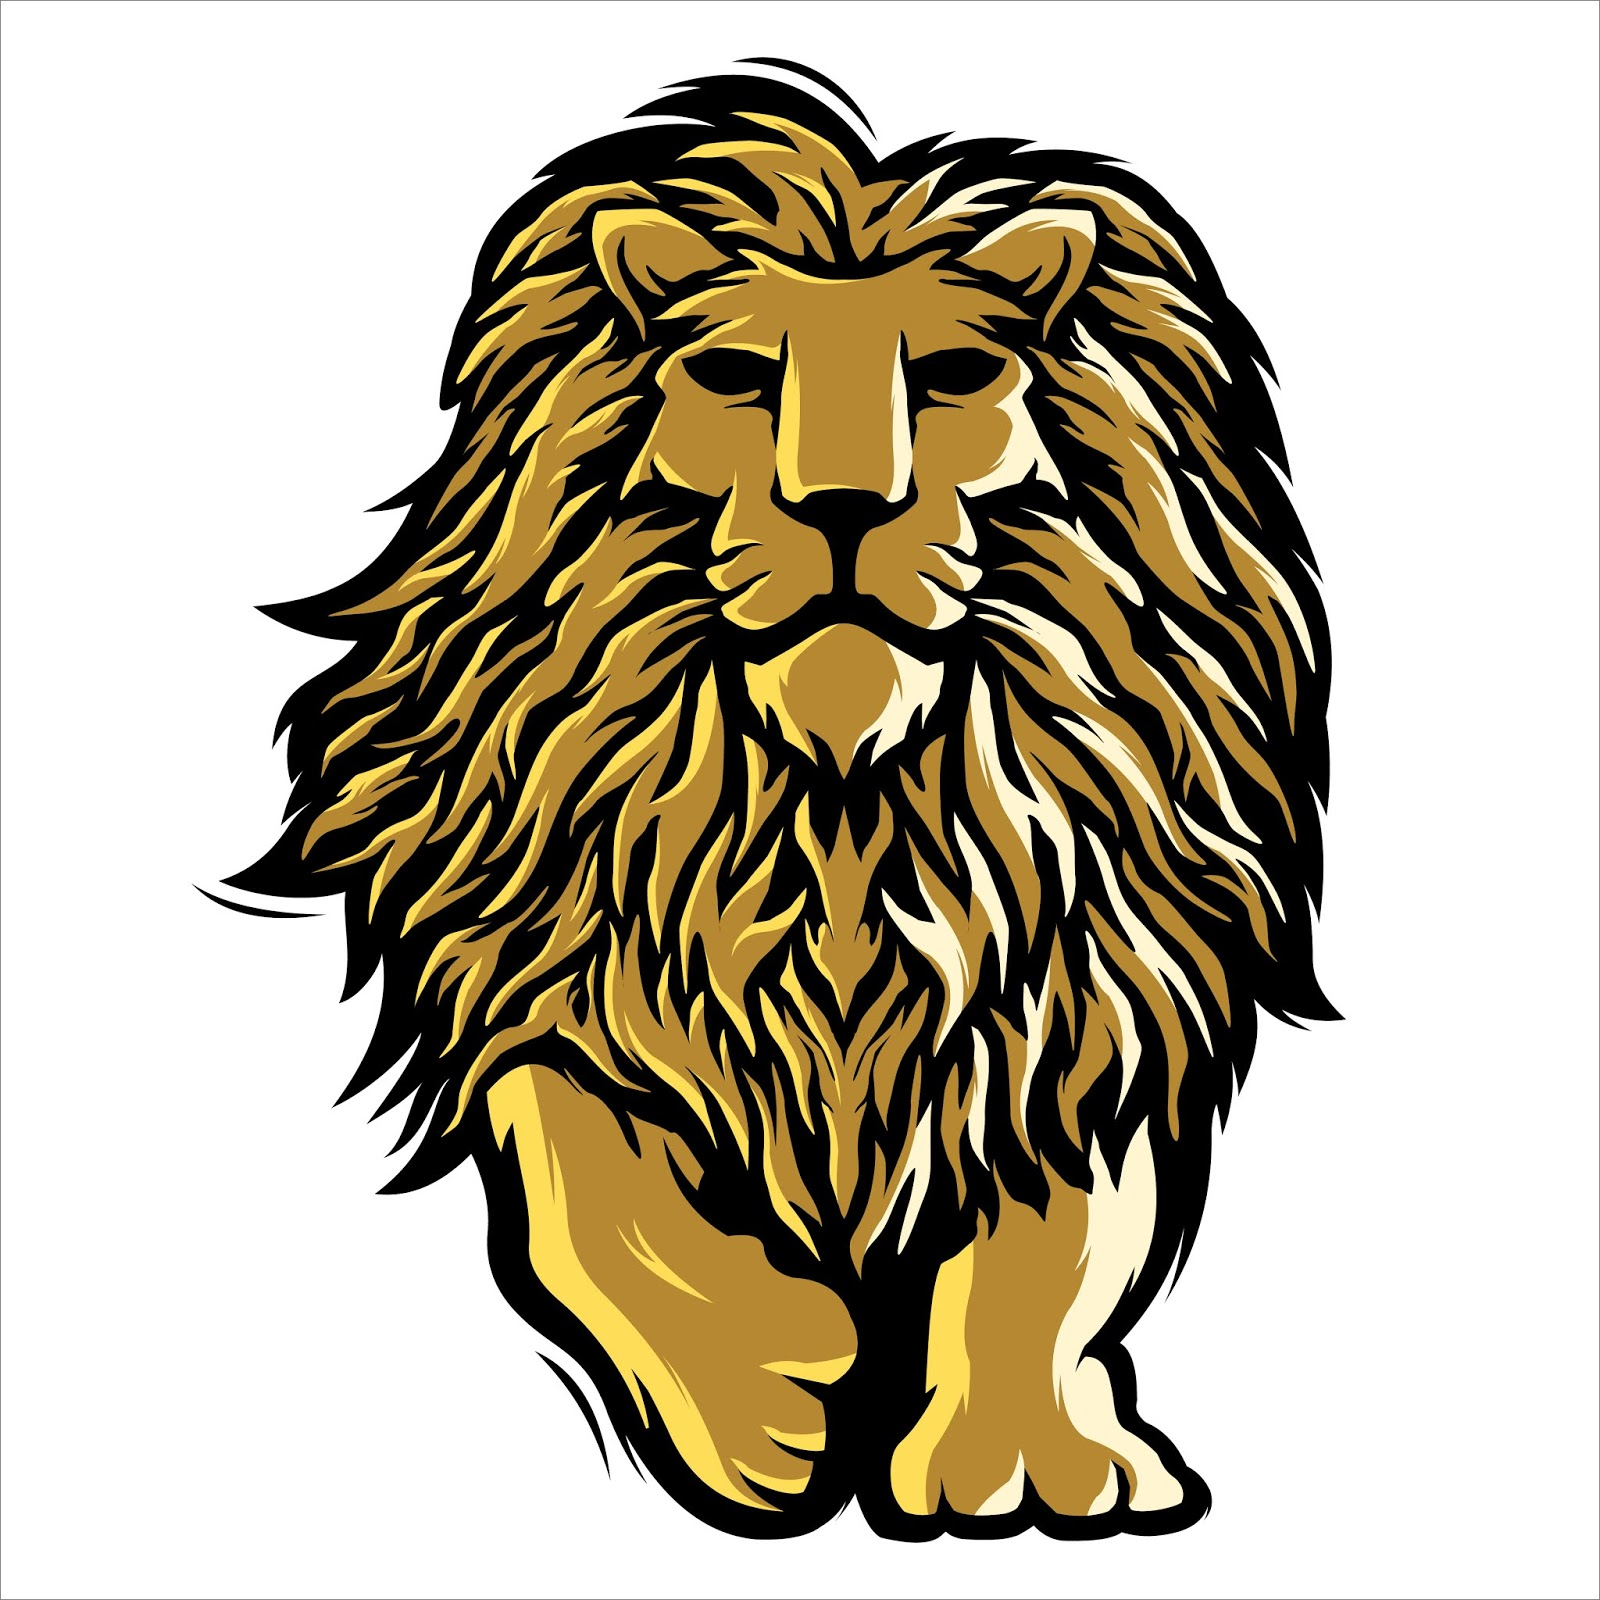 Mascot Lion Illustration Logo Free Download Vector CDR, AI, EPS and PNG Formats